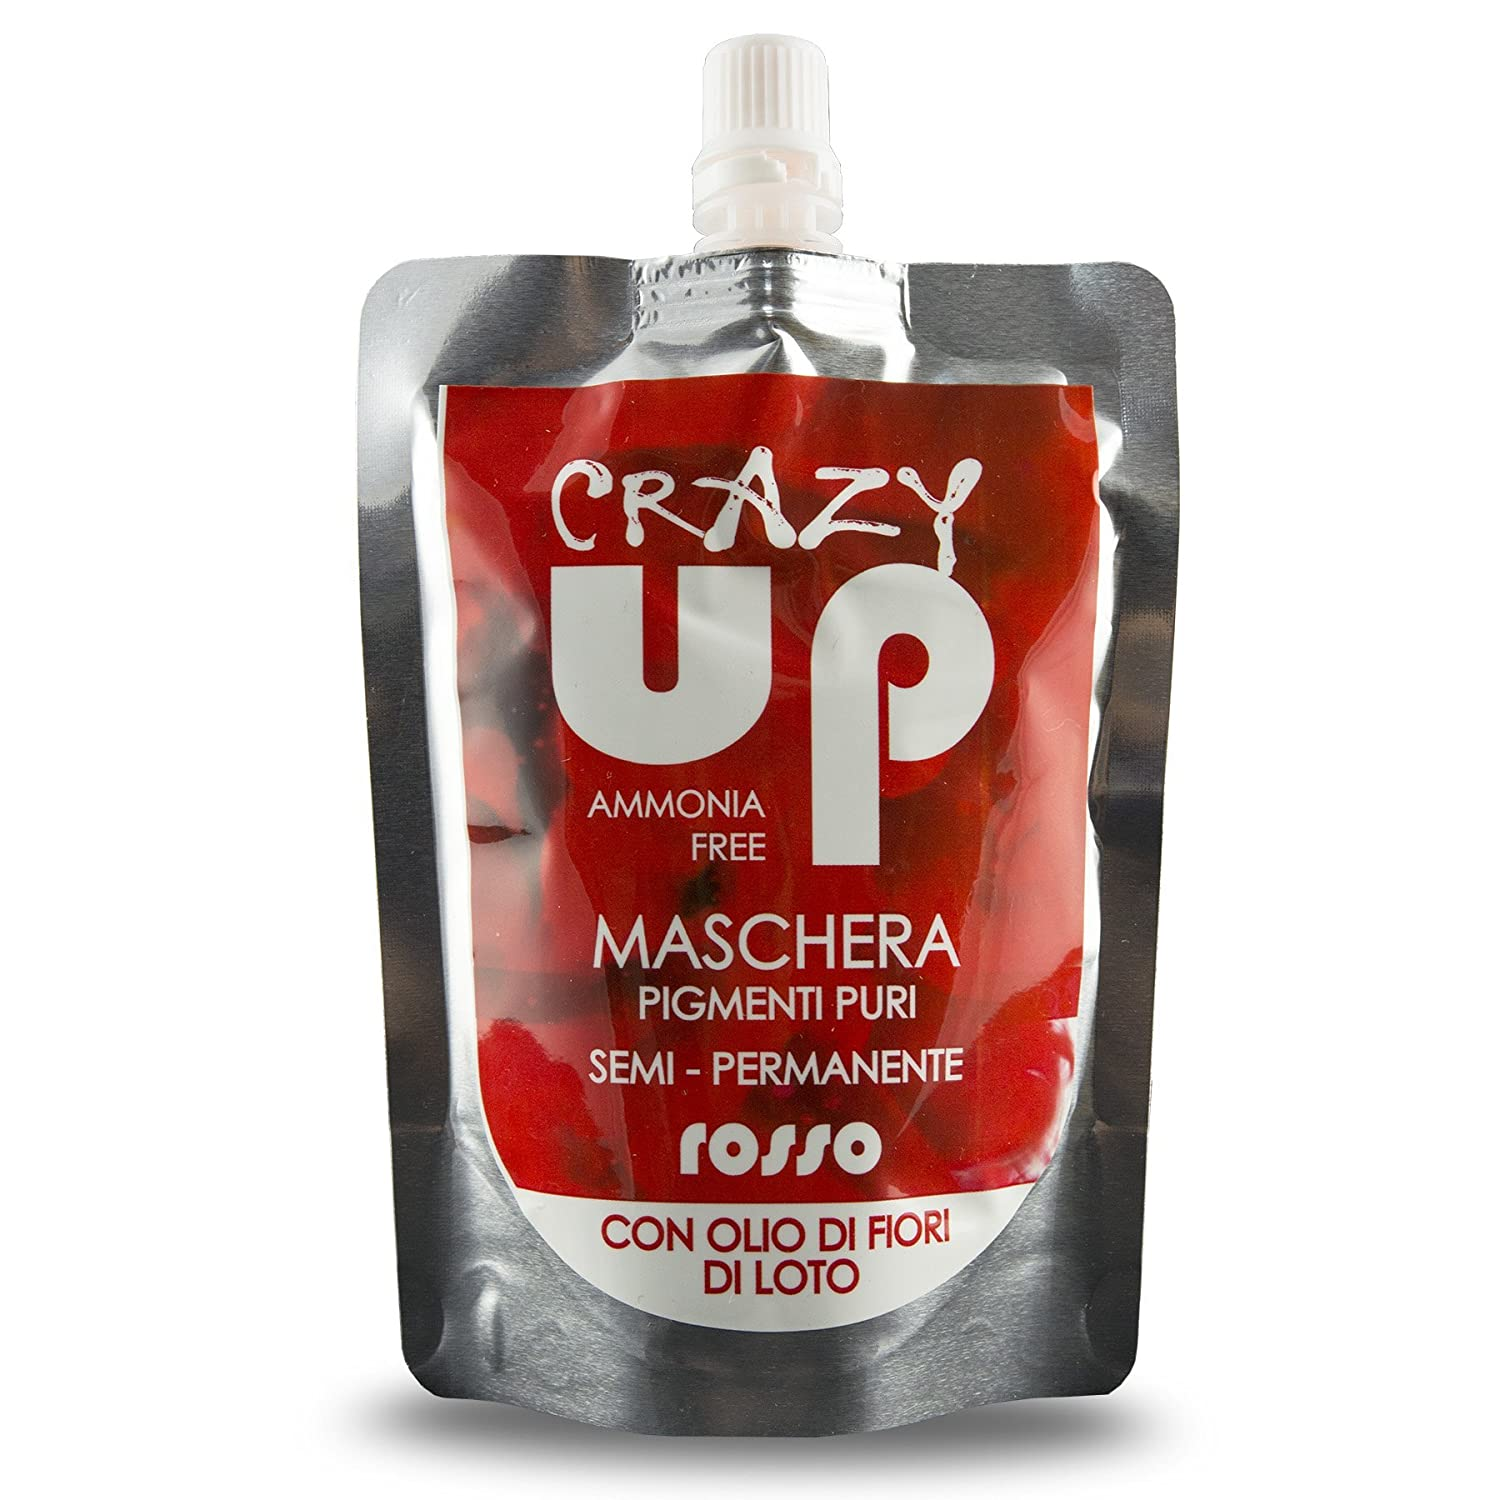 Crazy Up Maschere Capelli, Grigio - 300 g Pop Italy CRAZYUP02